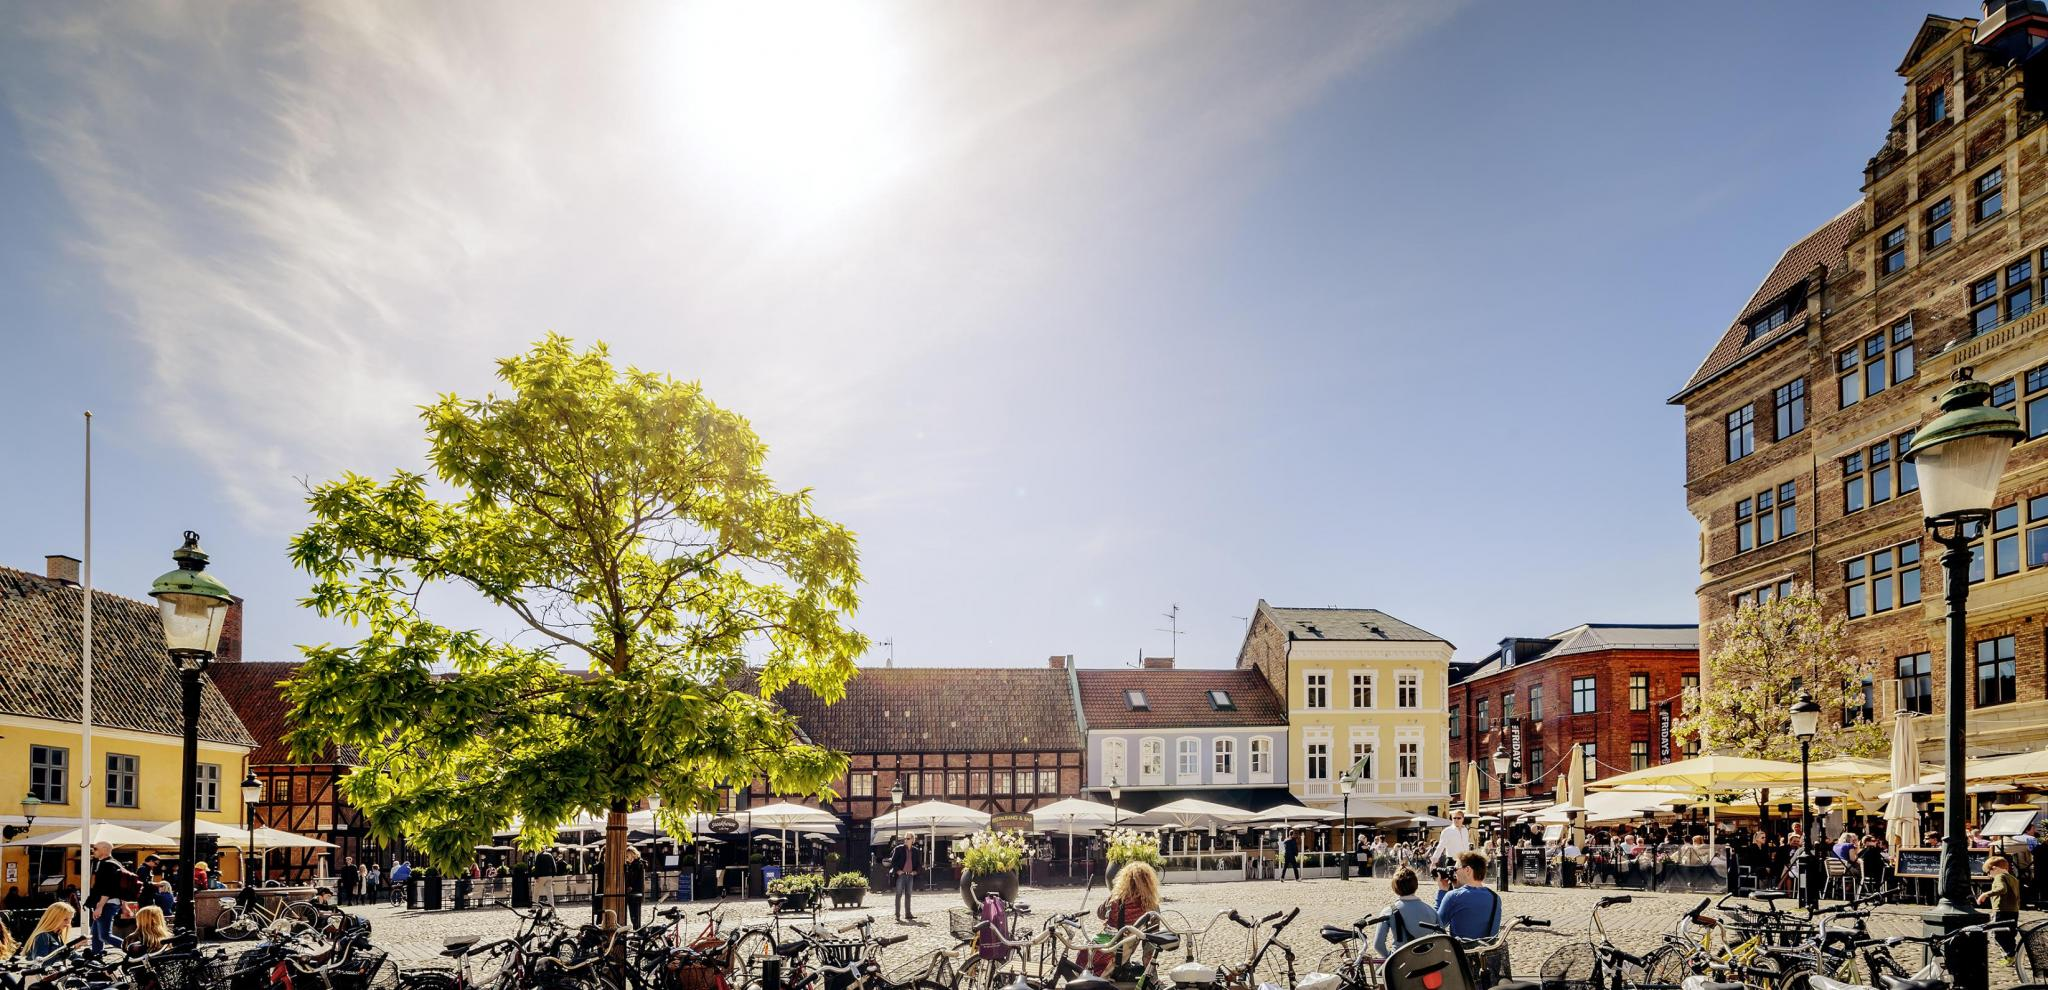 Lilla torg in the summer © Werner Nystrand